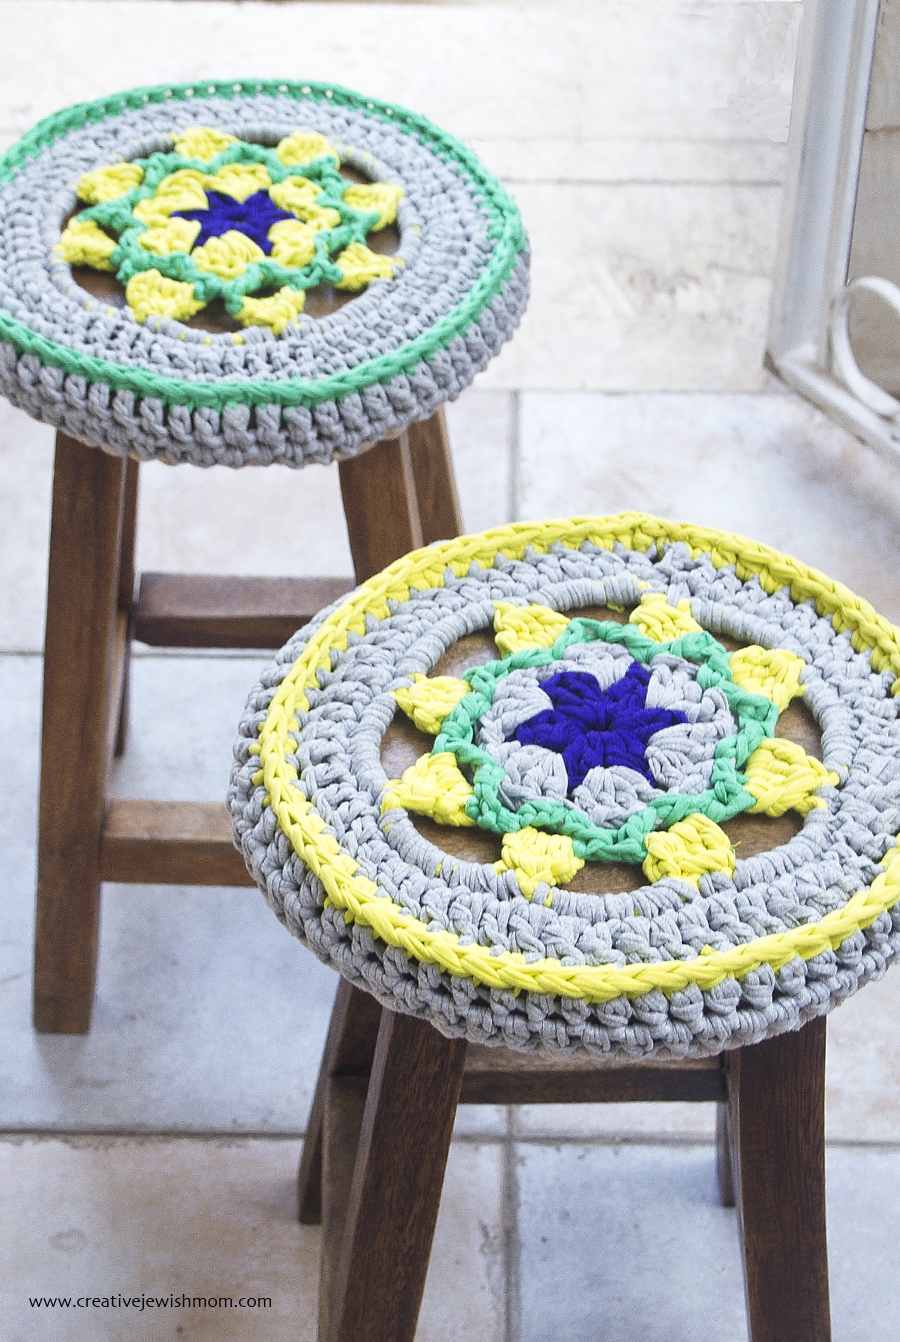 Crocheted T-Shirt Yarn Star Medallion Stool Cover Pattern - creative ...